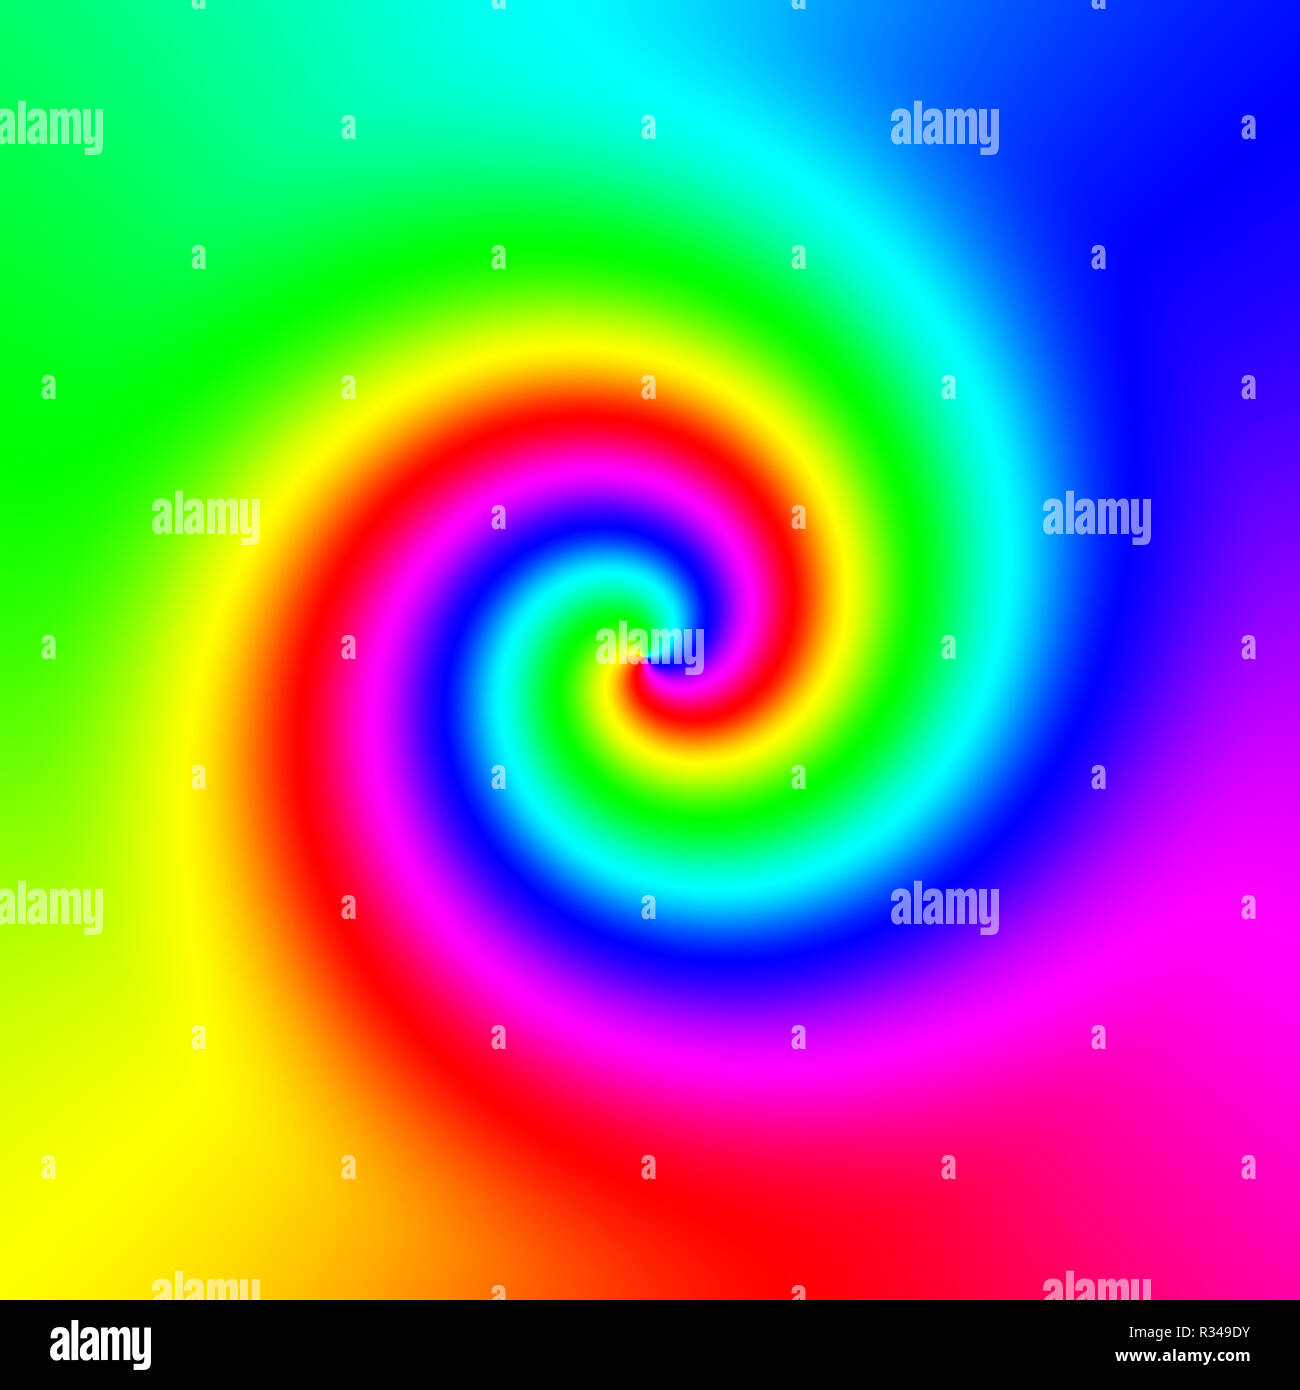 color wheel - Stock Image